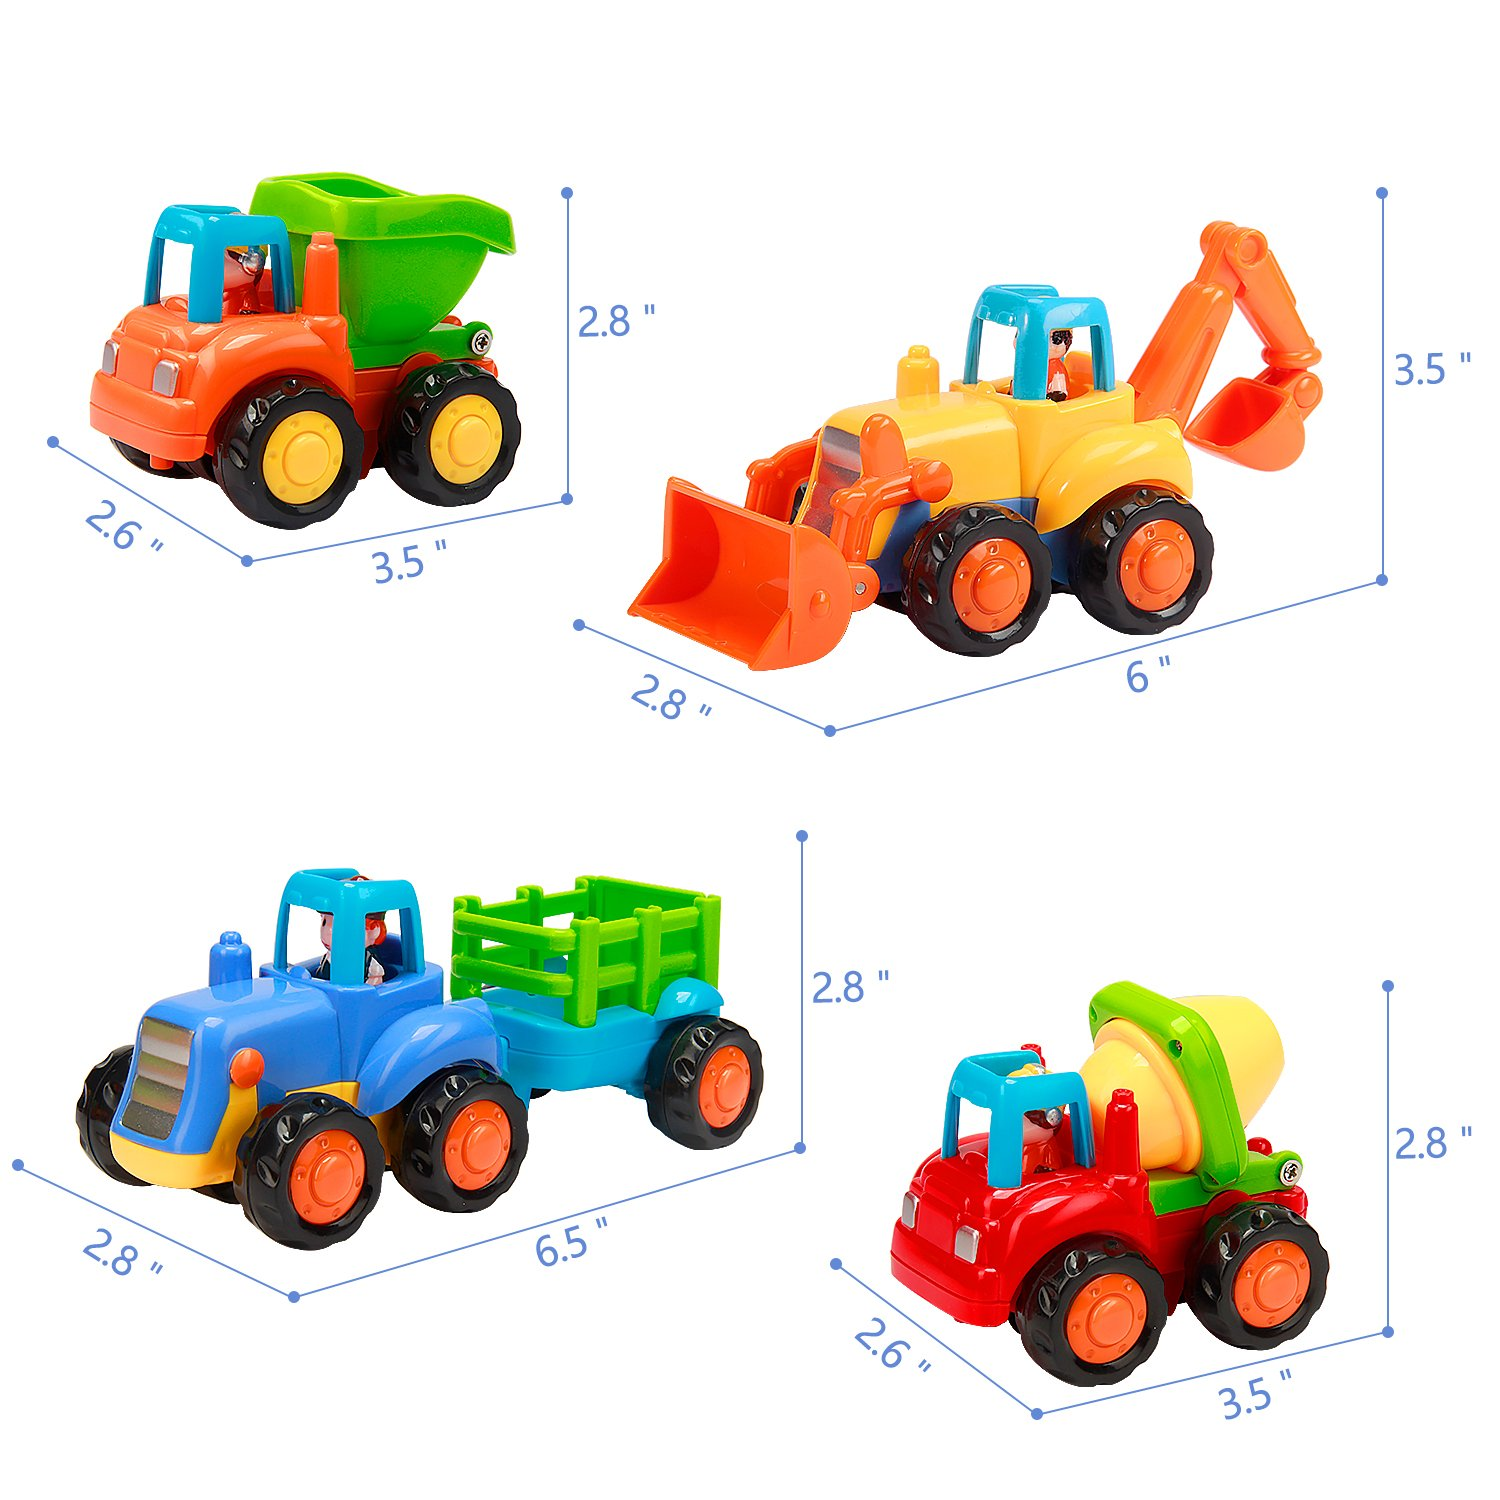 4 Pcs Kids Toys Cars Set Push and Go Cartoon Construction Vehicles Toys Vamslove Friction Powered Cars Early Educational Engineering Gifts Toys for Kids Boys Girls Toddlers Baby 1 2 3 Years Old